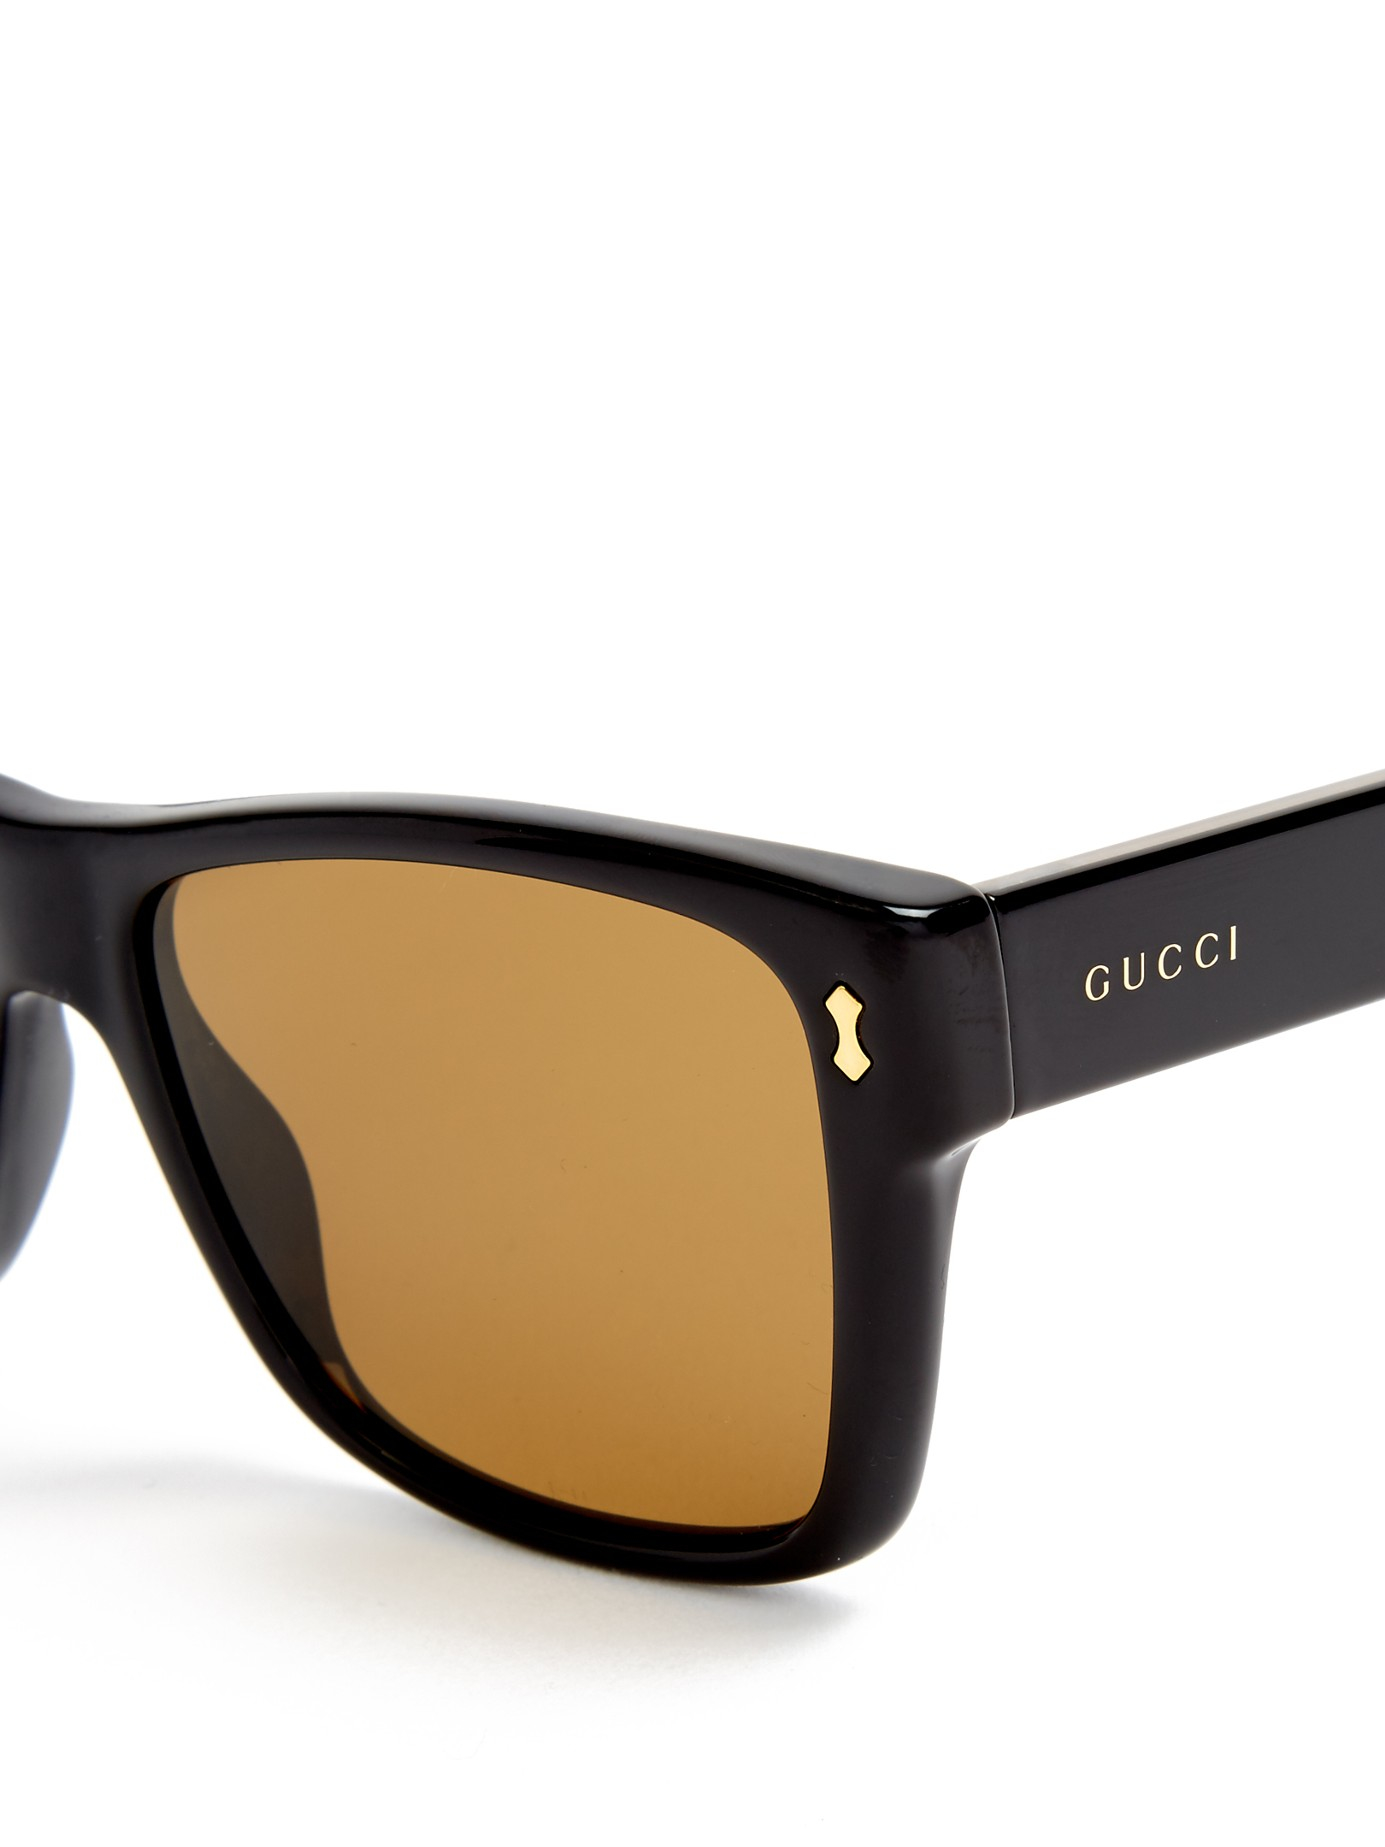 2b37ab3ece Lyst - Gucci Rectangular-frame Acetate Sunglasses in Black for Men